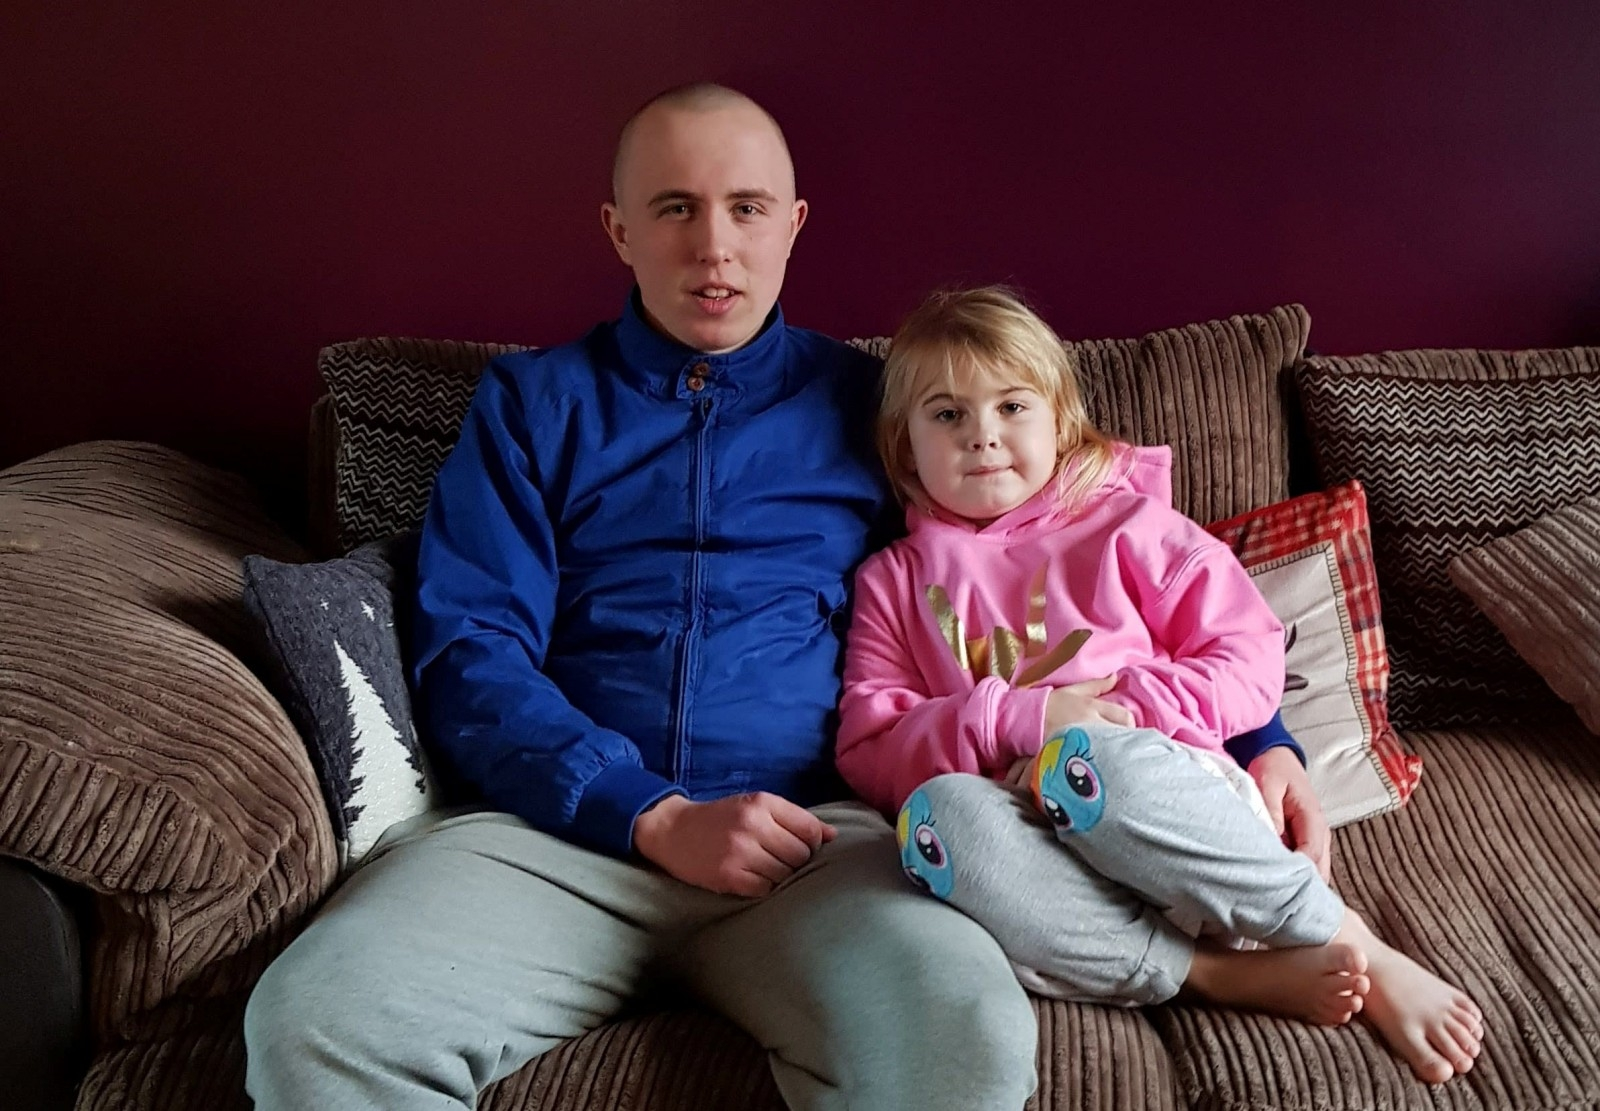 Kindhearted Brother Shows Unbreakable Bond With Little Sister – By Letting Her Shave His Head After She Was Diagnosed With Cancer